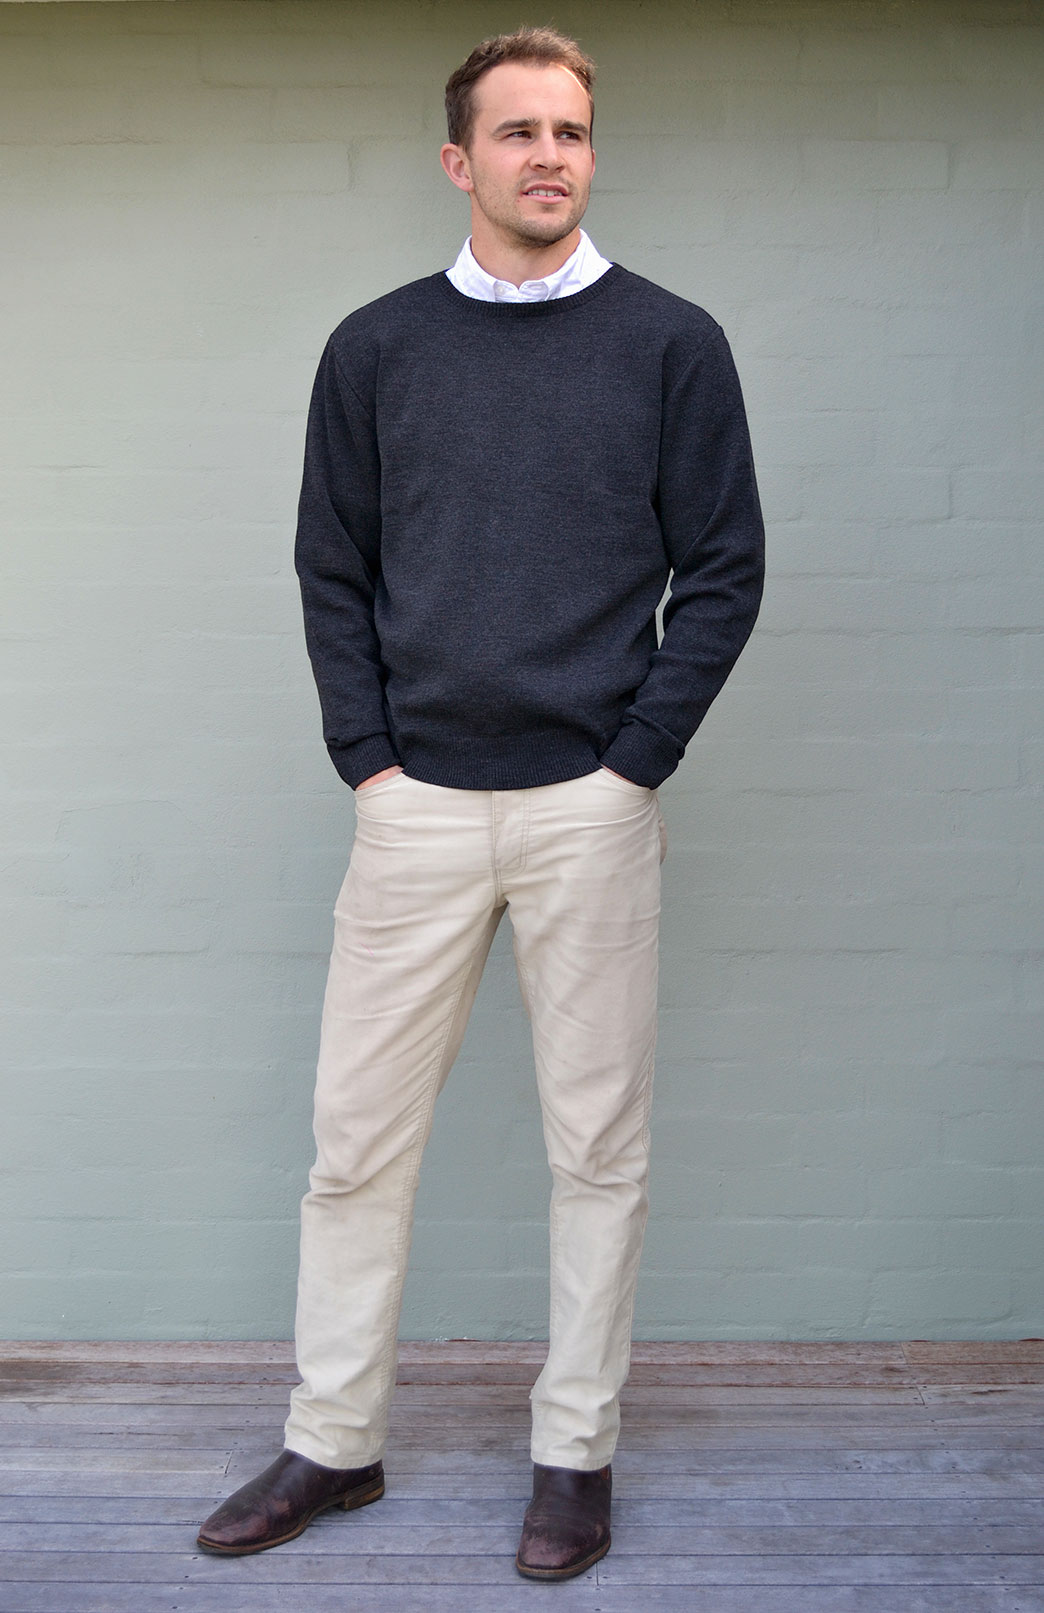 Men's Knitted Wool Round Neck Jumper - Men's Superfine Knitted Merino Wool Classic Style Round Neck Jumper - Smitten Merino Tasmania Australia